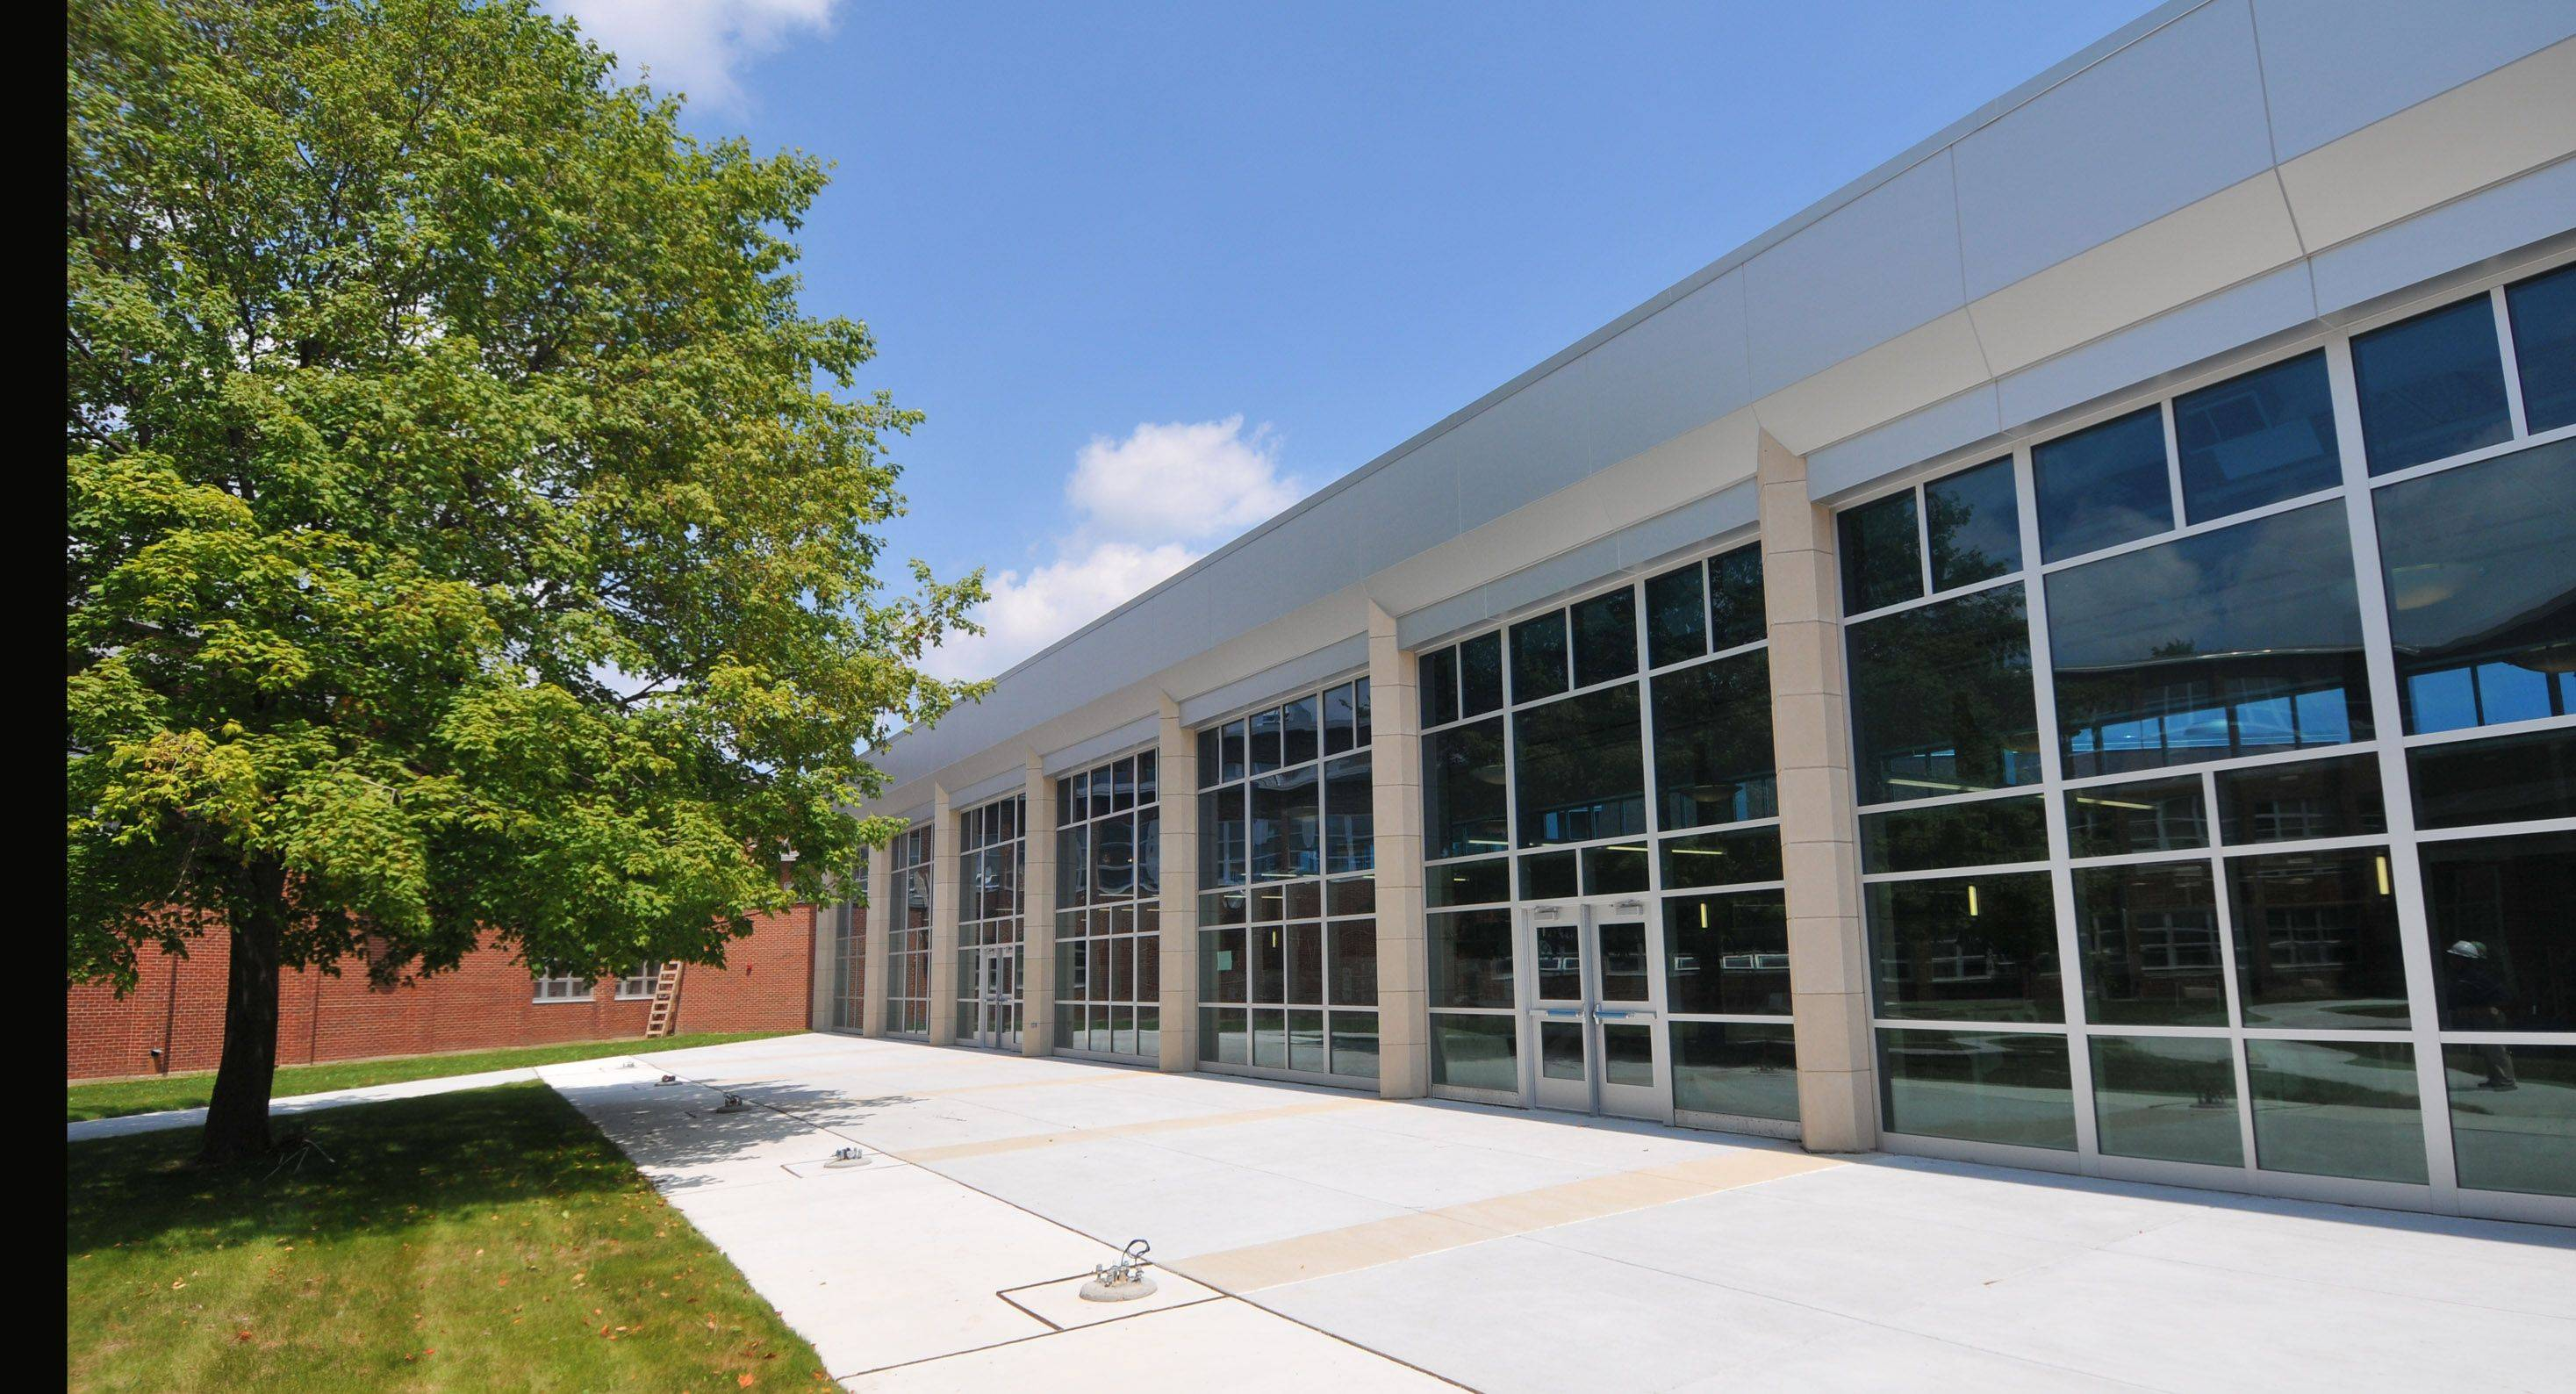 During guided tours and a dedication ceremony Sunday, visitors can see changes like this new courtyard at Addison Trail High School.